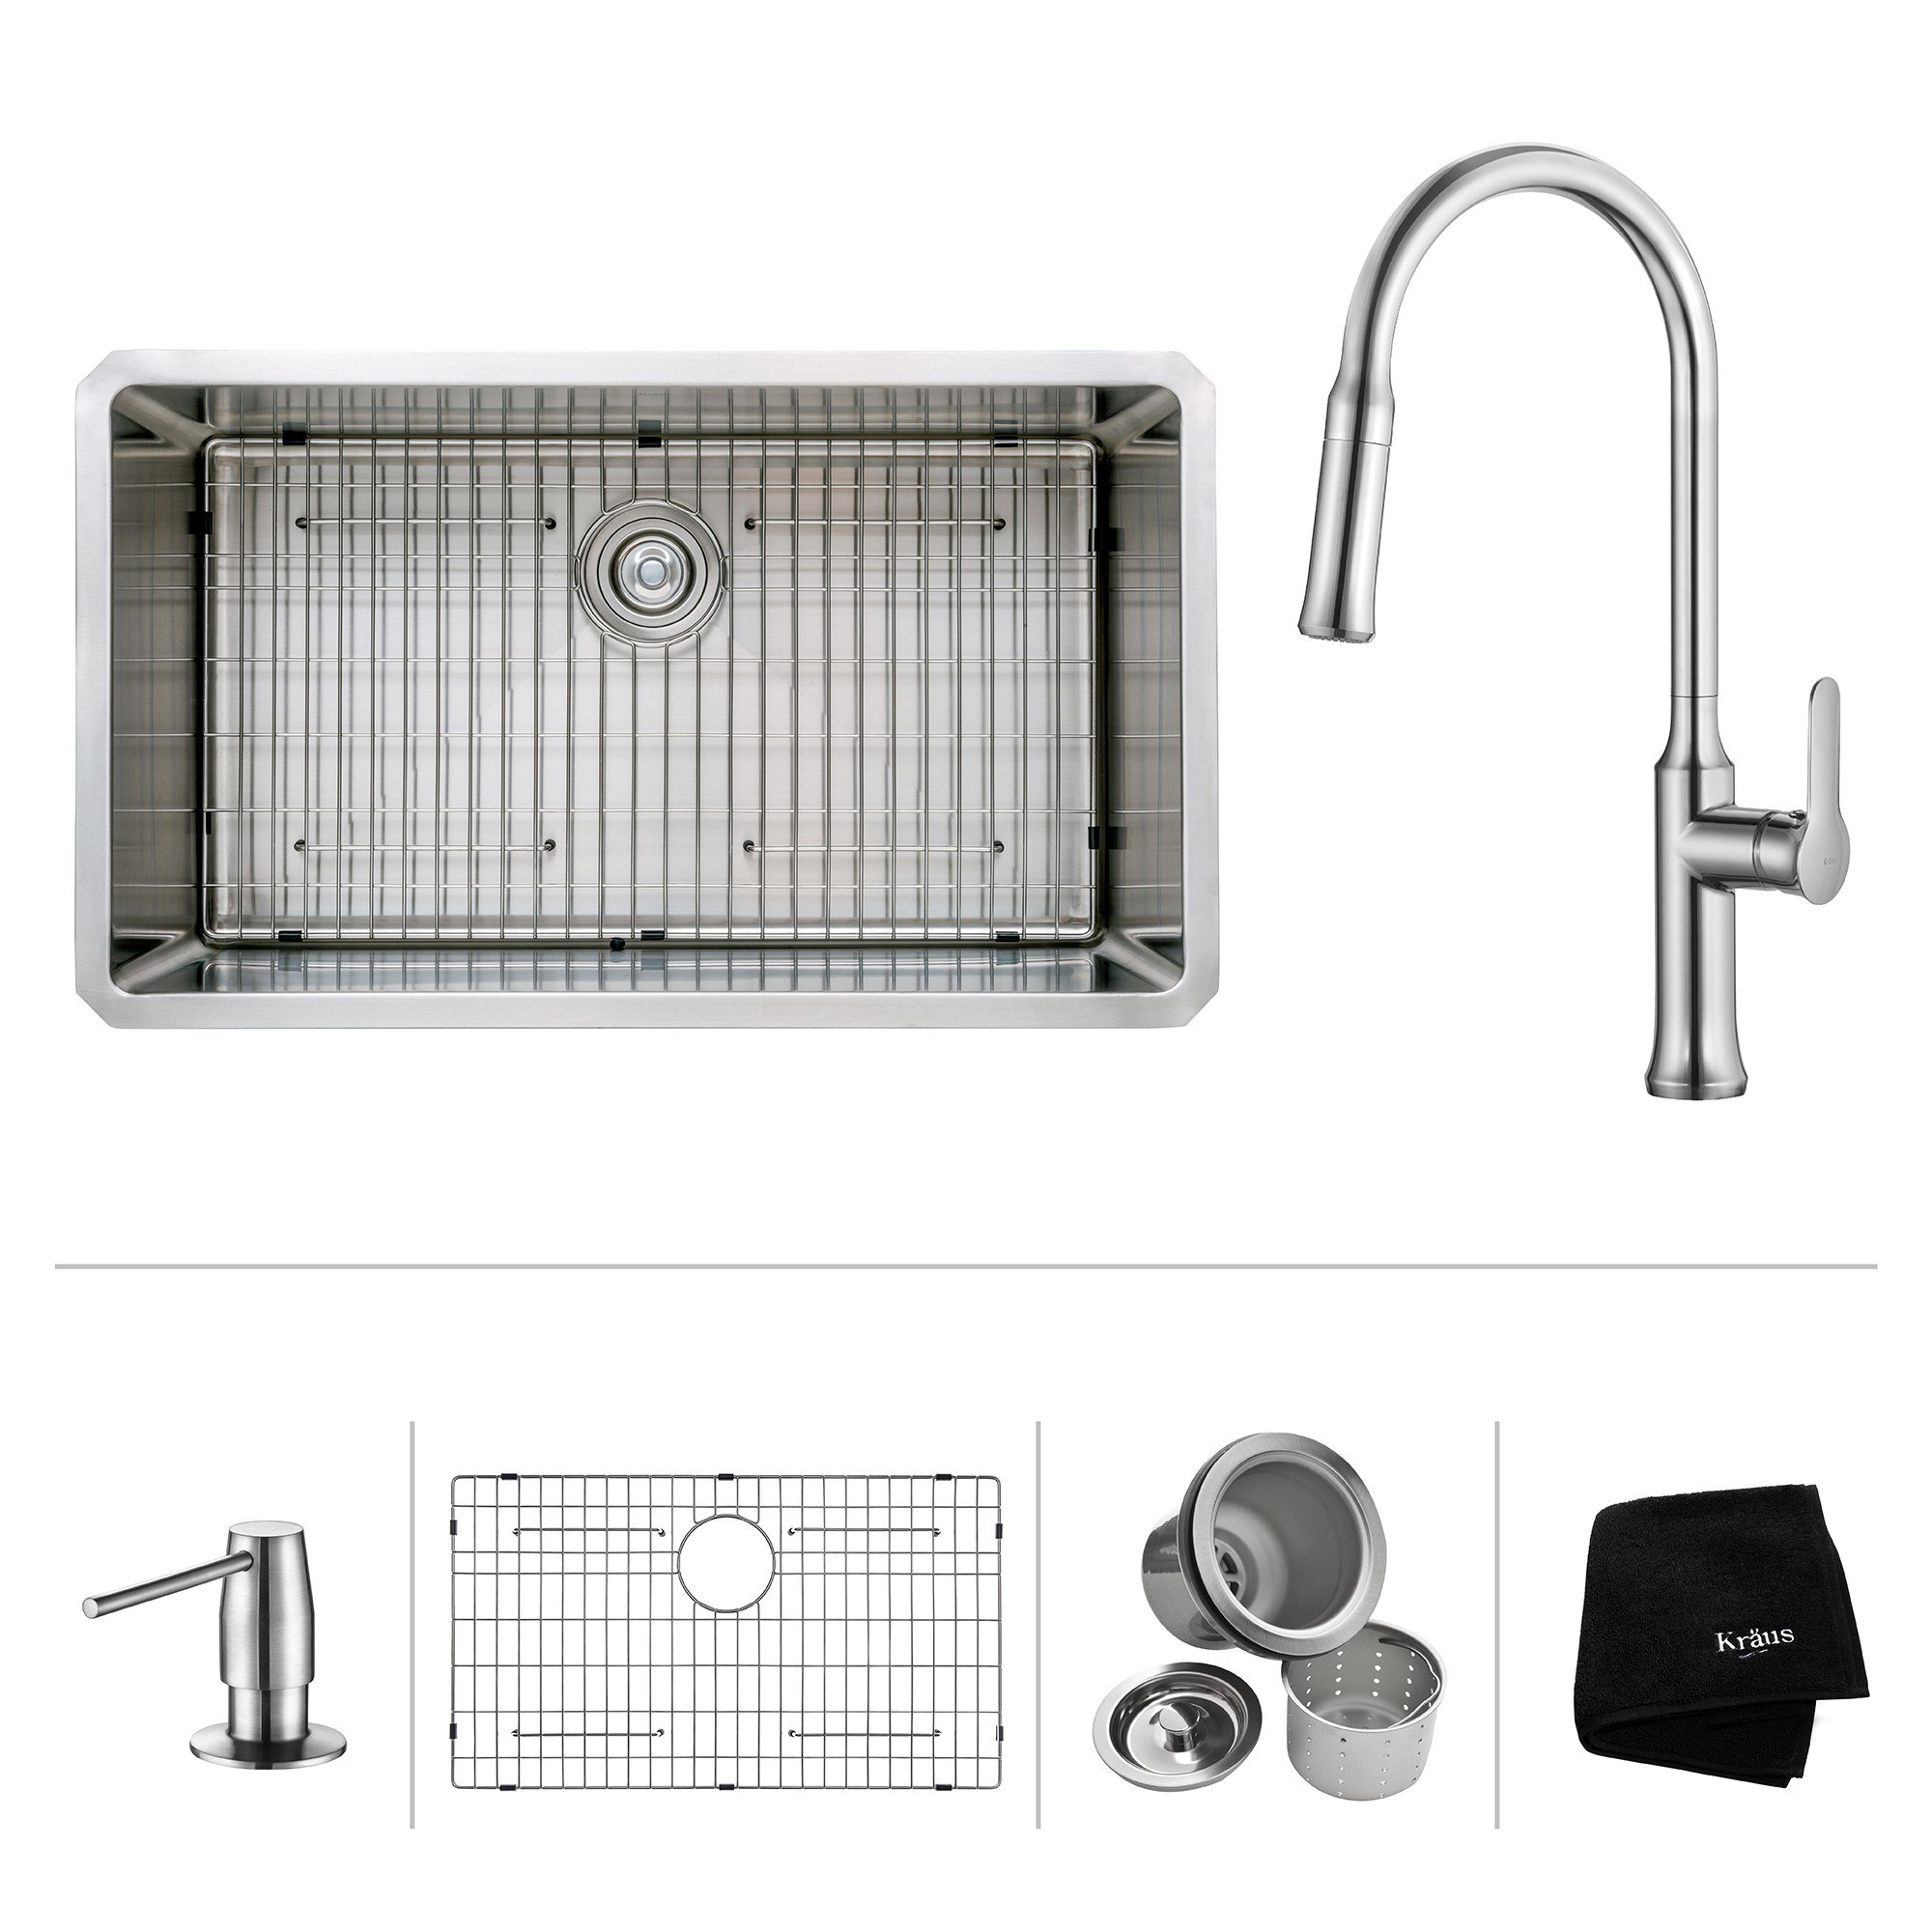 Kraus KHU100-32-1630-42 32 Inch Undermount Single Bowl Stainless Steel Sink with Pull Down Faucet & Soap Dispenser